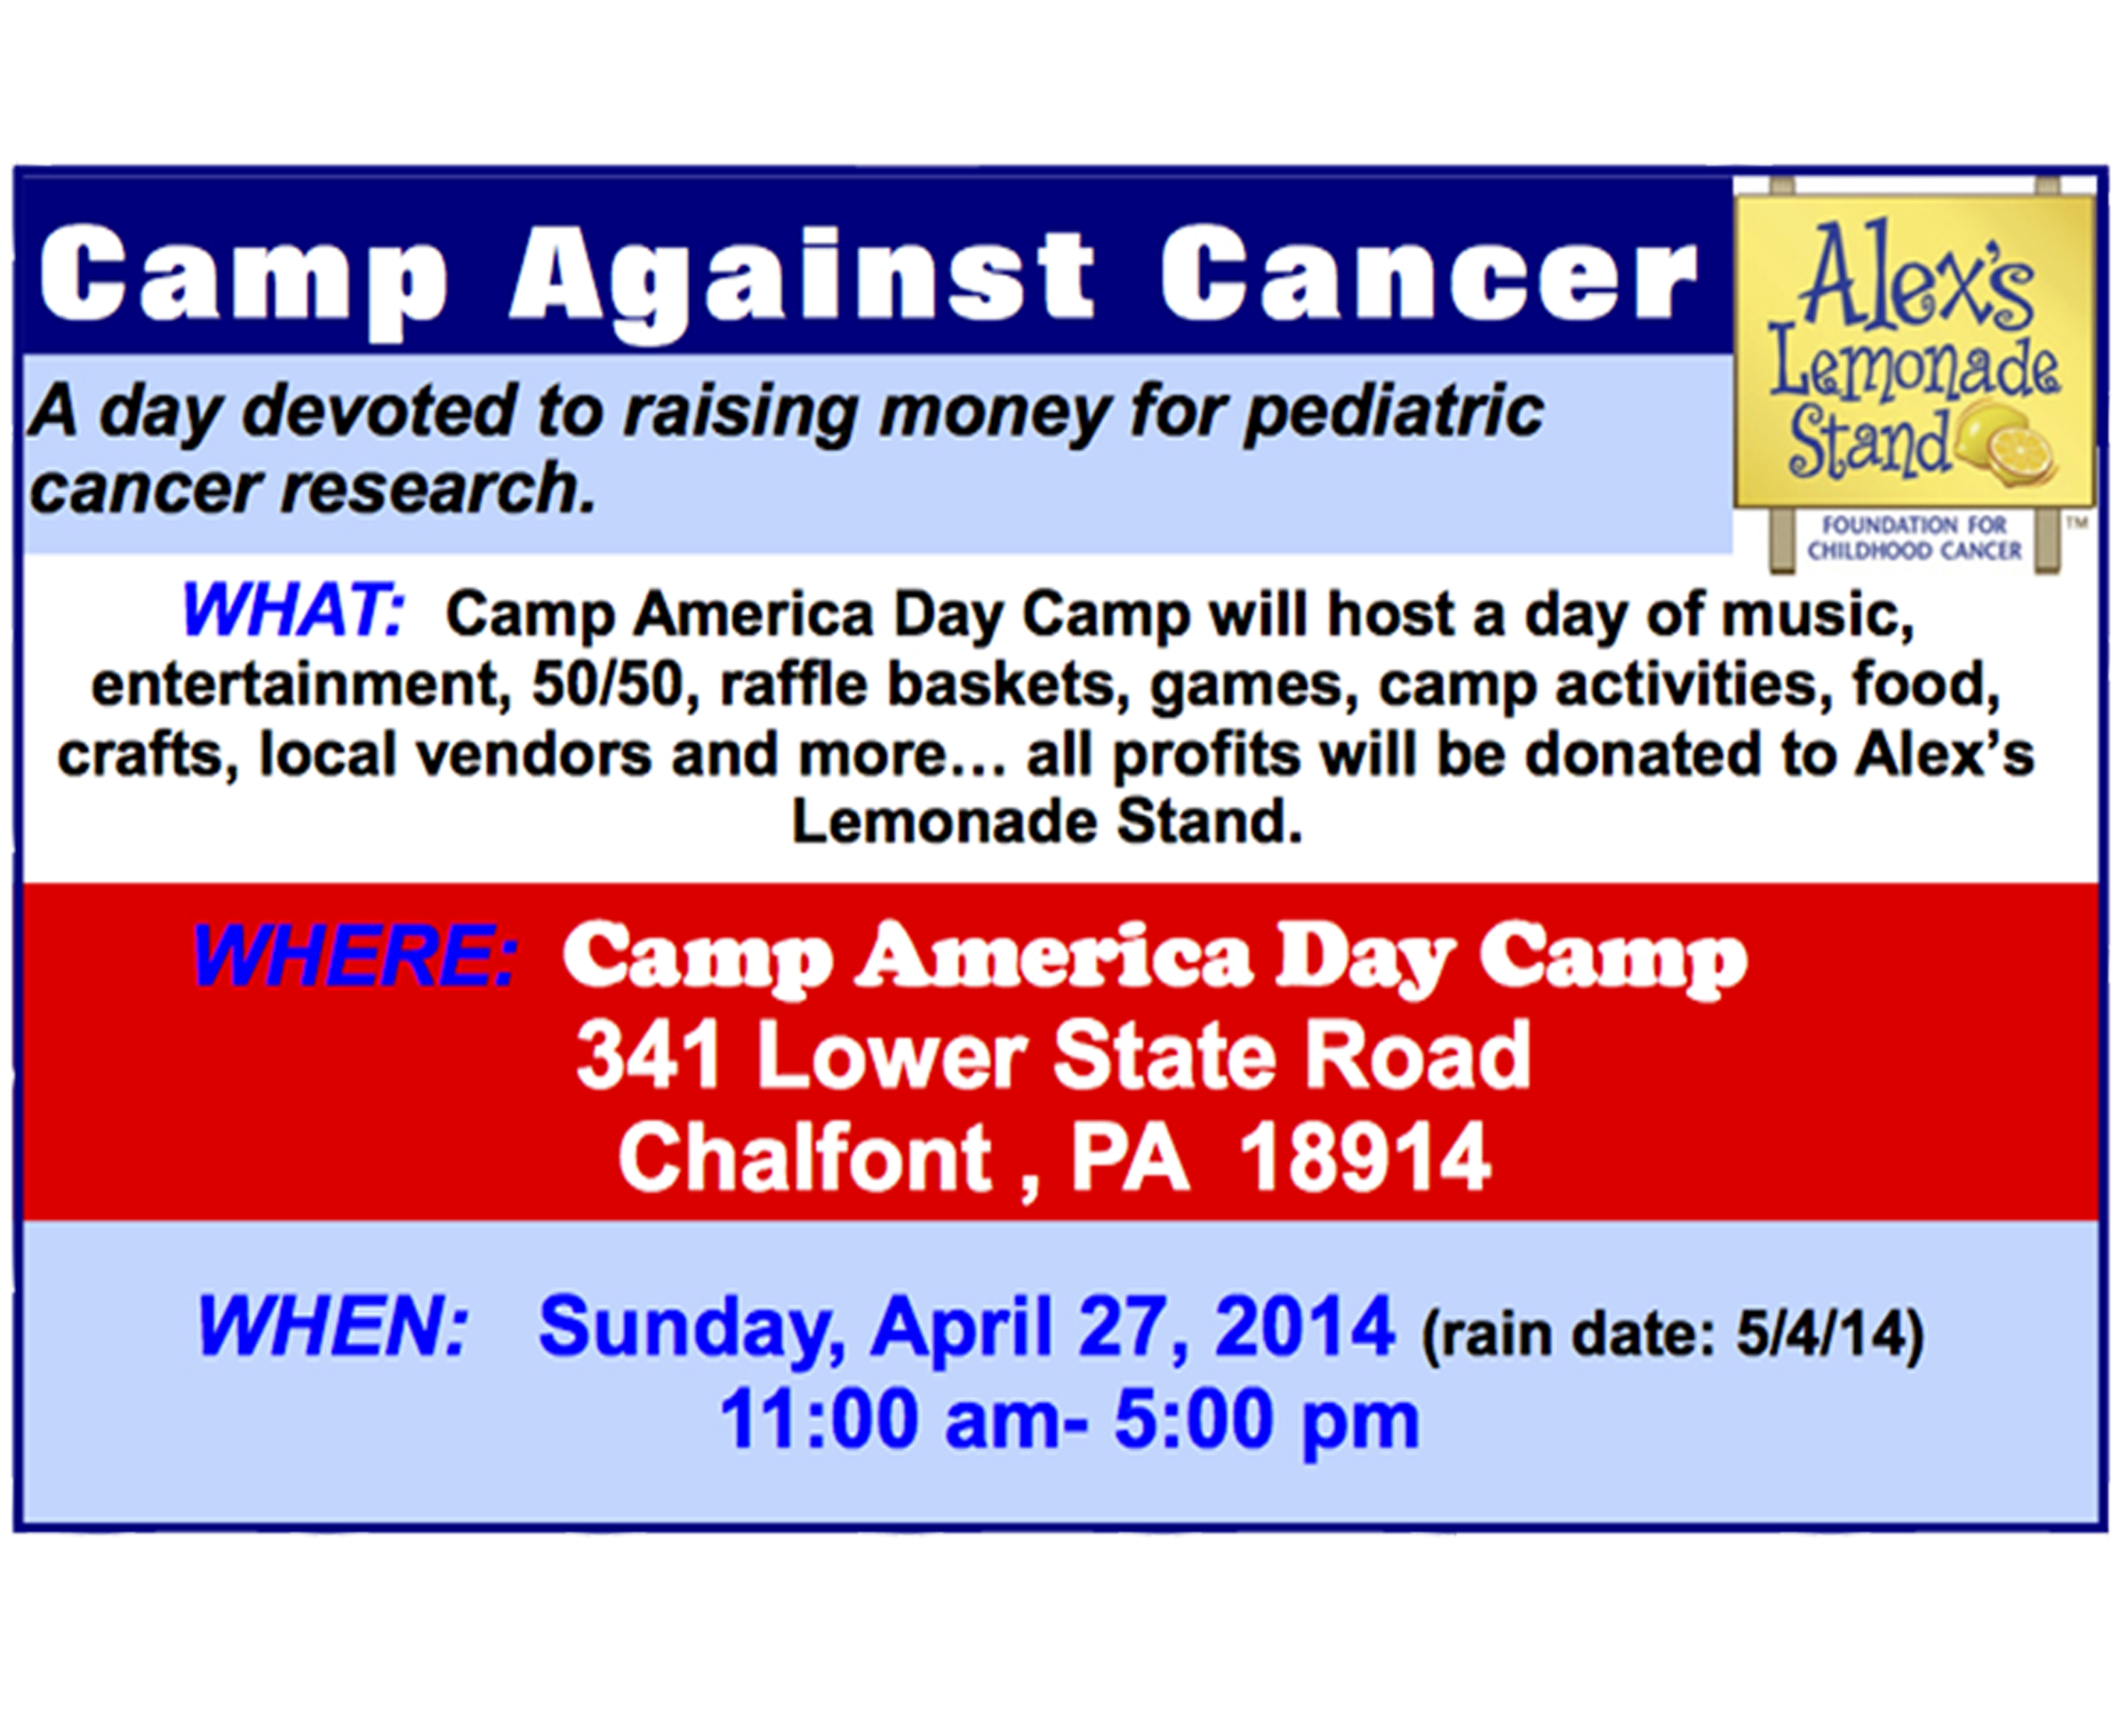 Camp America Day Camp & Alex's Lemonade Stand present: Camp Against Cancer